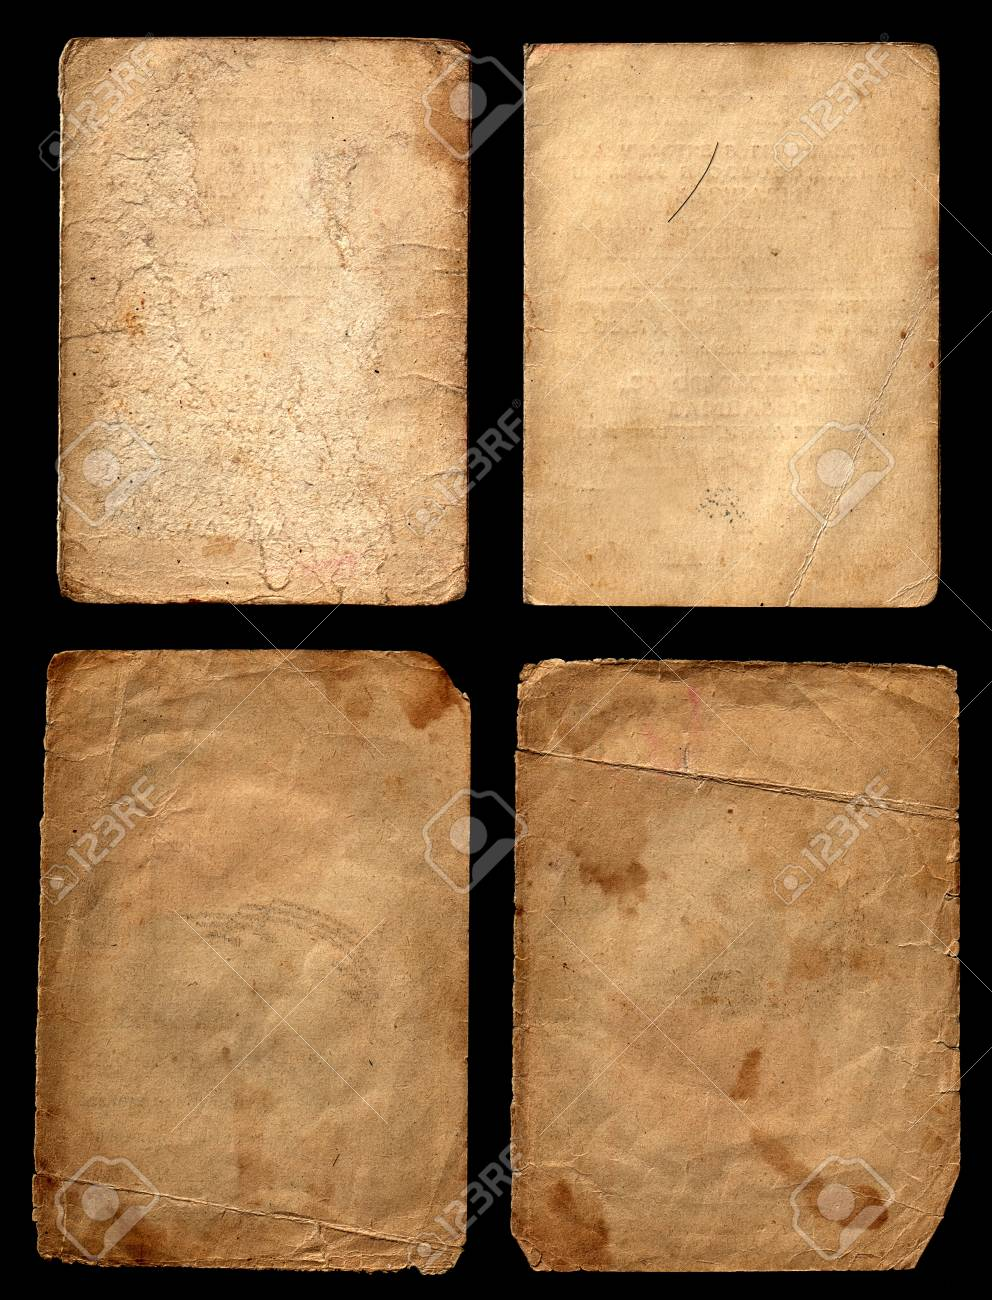 Set of old grunge papers on a black background Stock Photo - 13087633